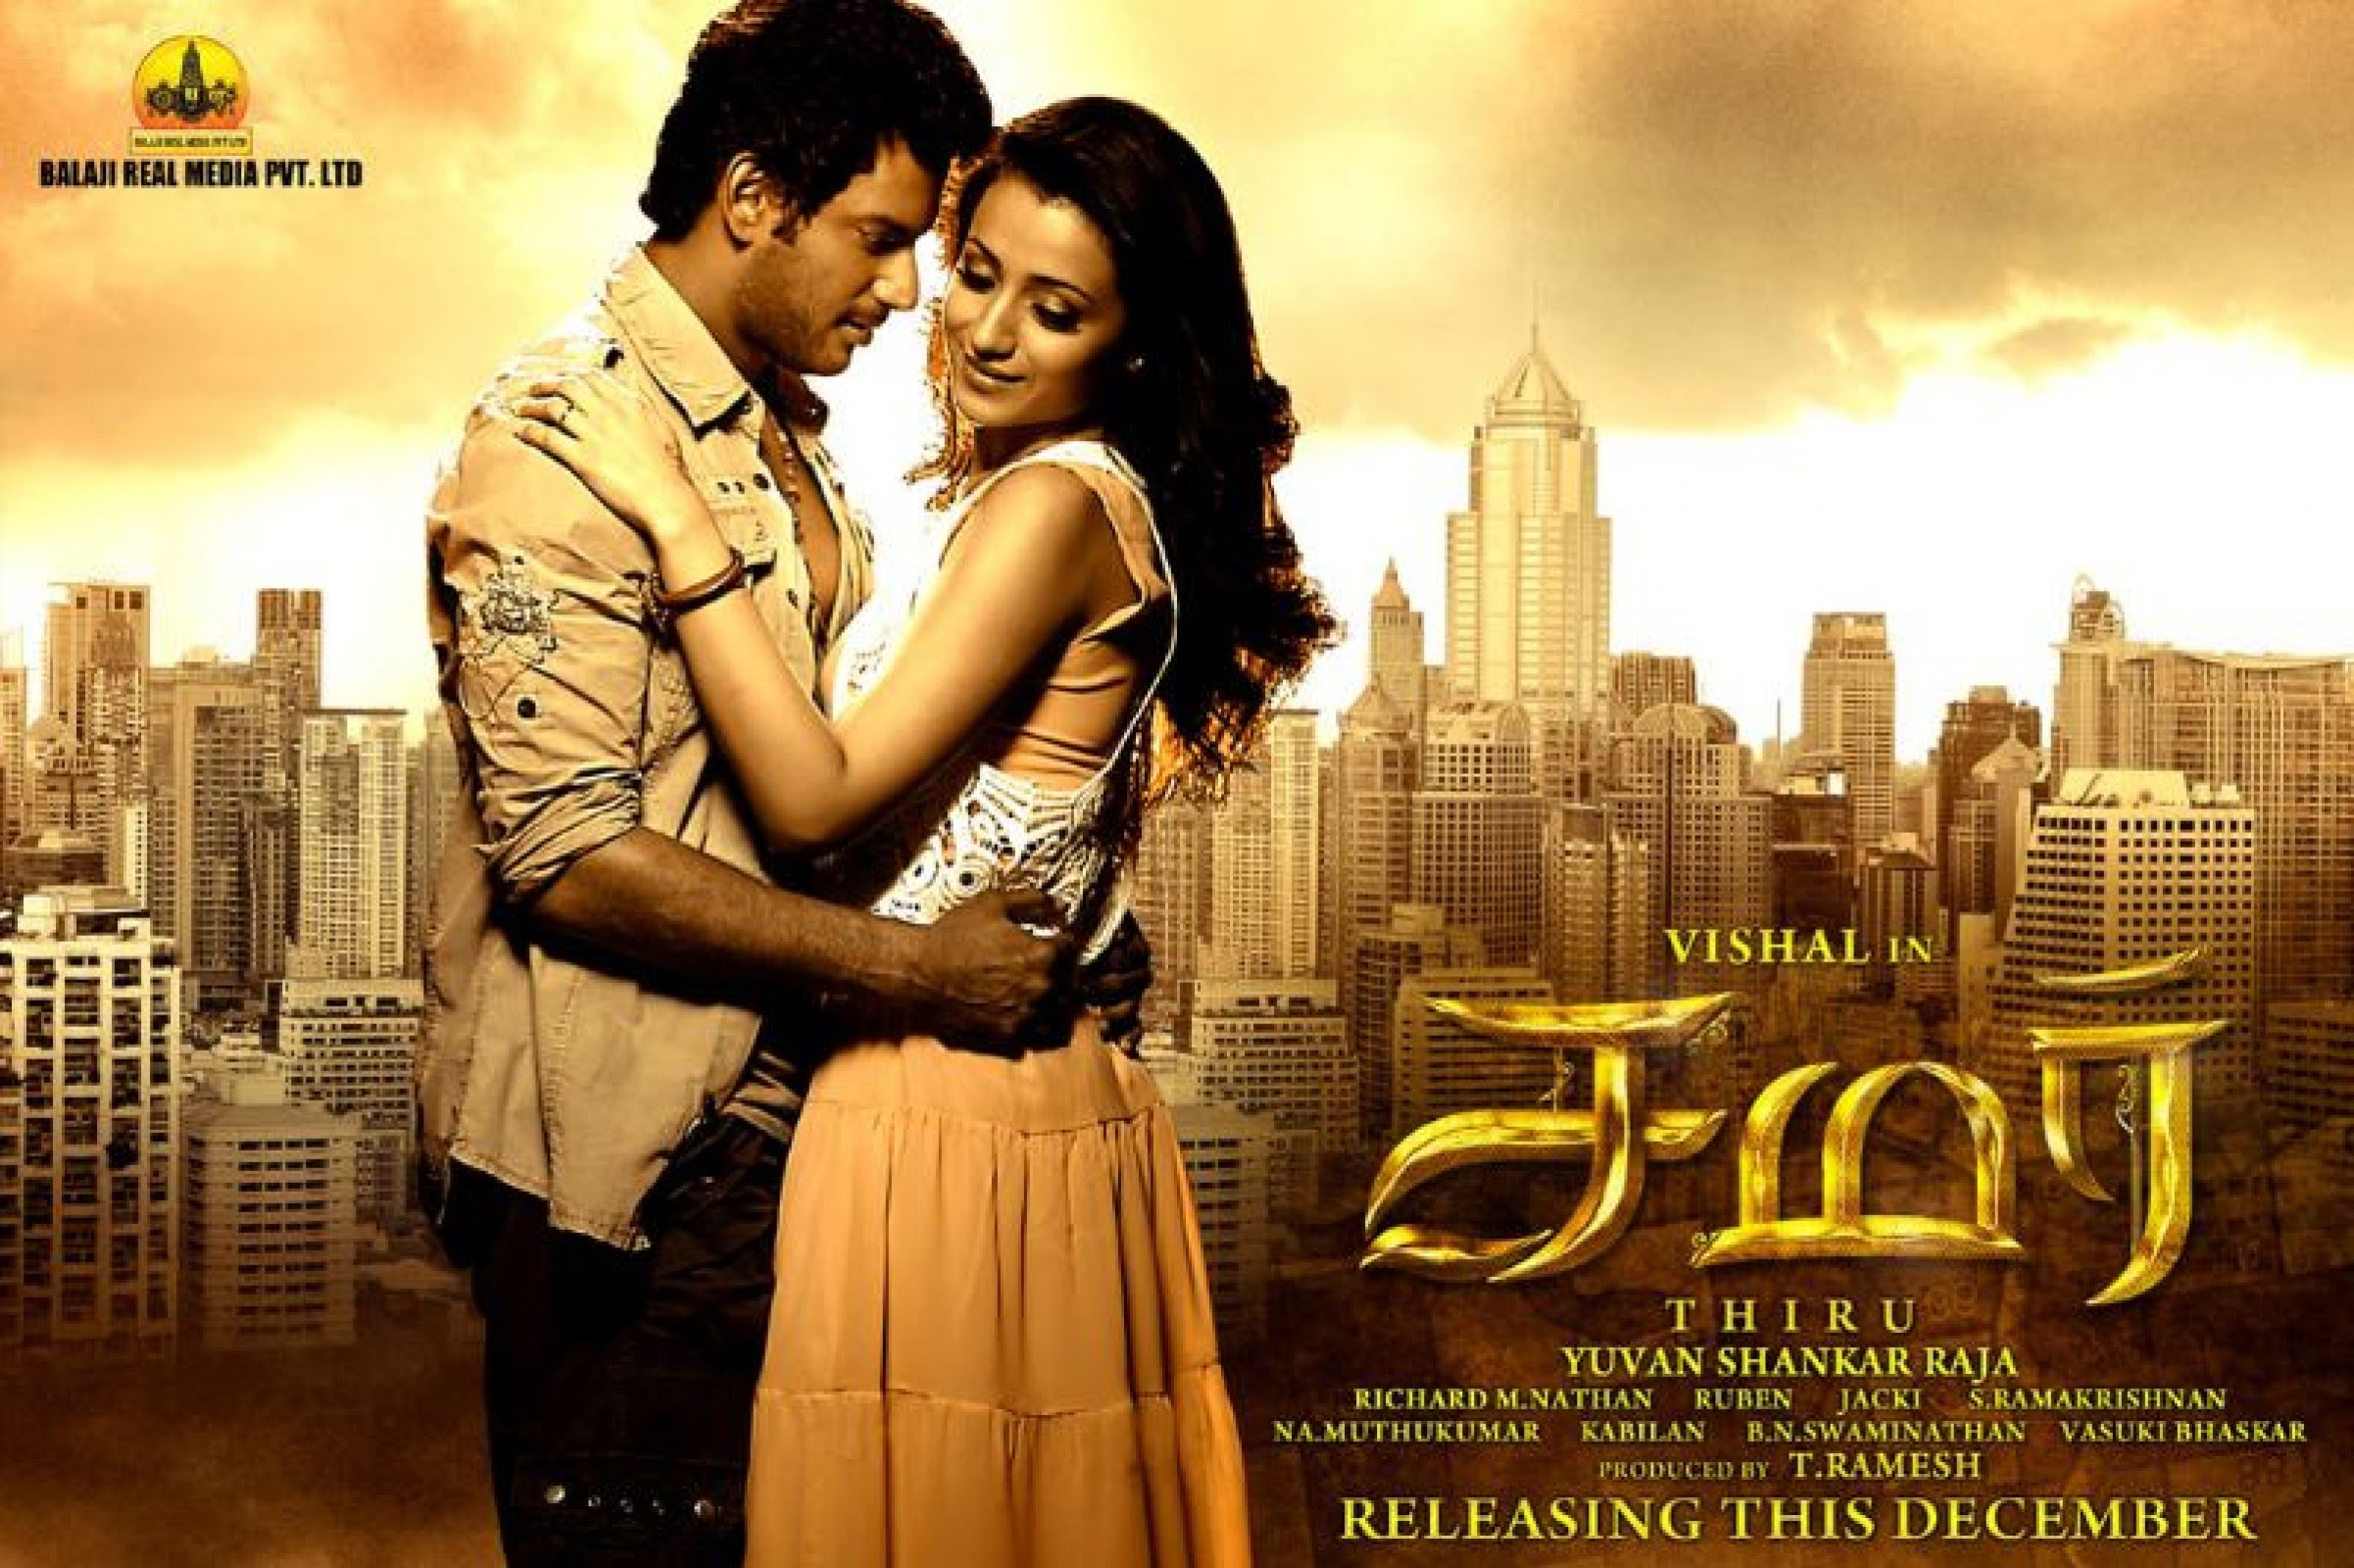 Samar 2013 Movie Poster: SAMAR MOVIE Movie Reviews